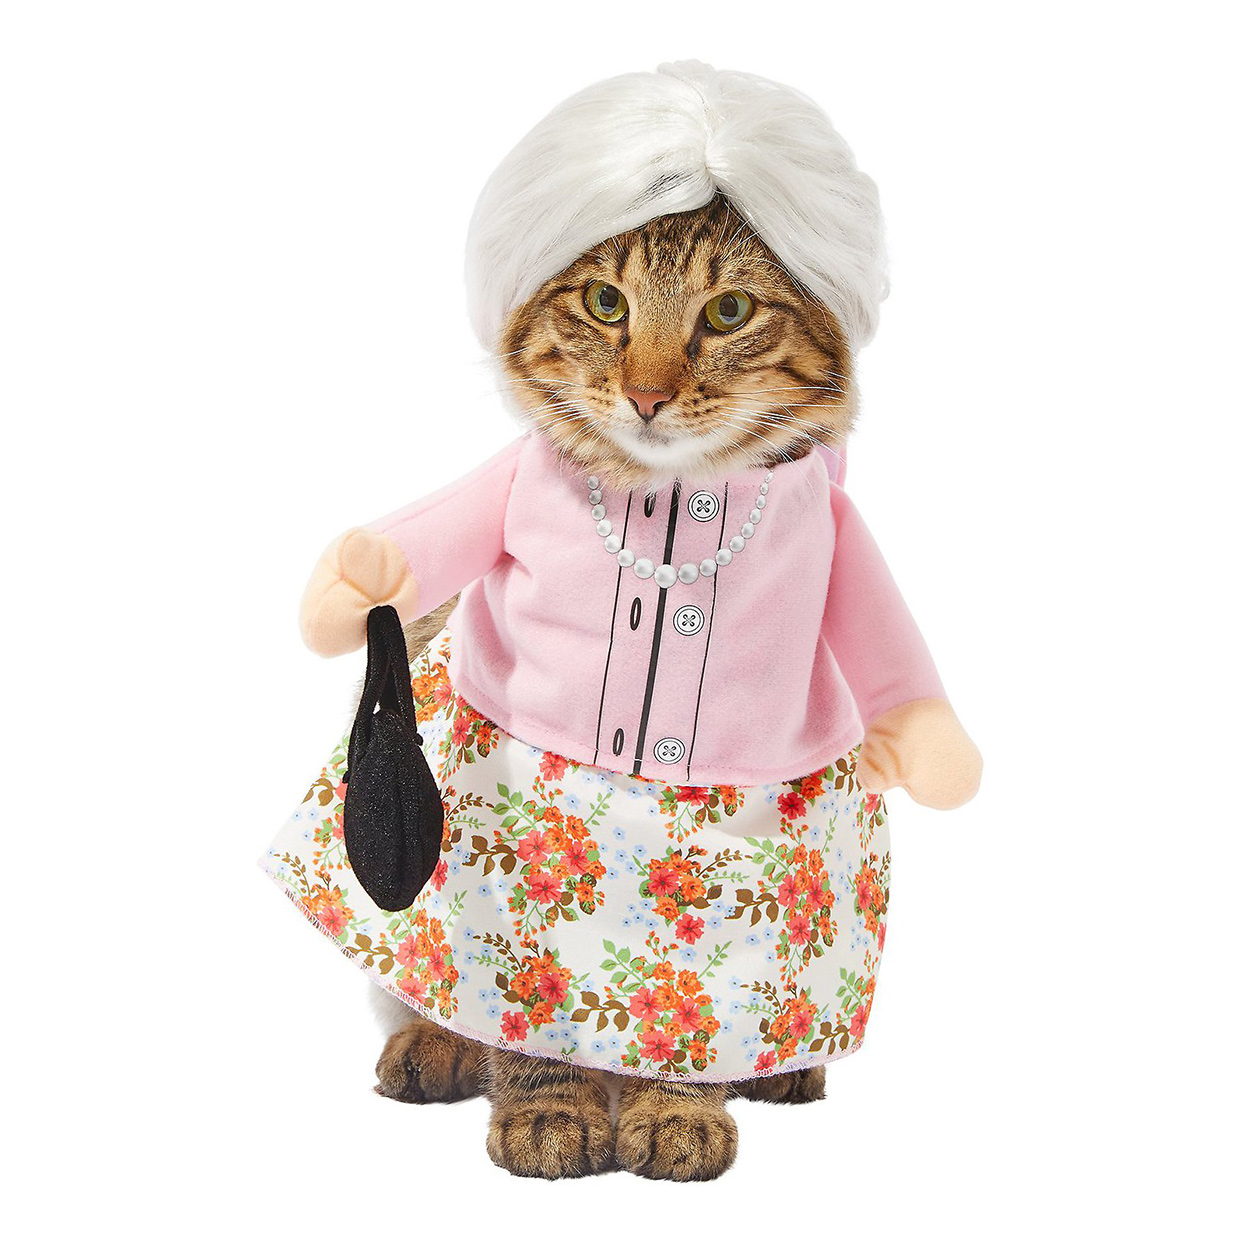 Cat wearing a Frisco Front Walking Granny Dog & Cat Costume on on a white background